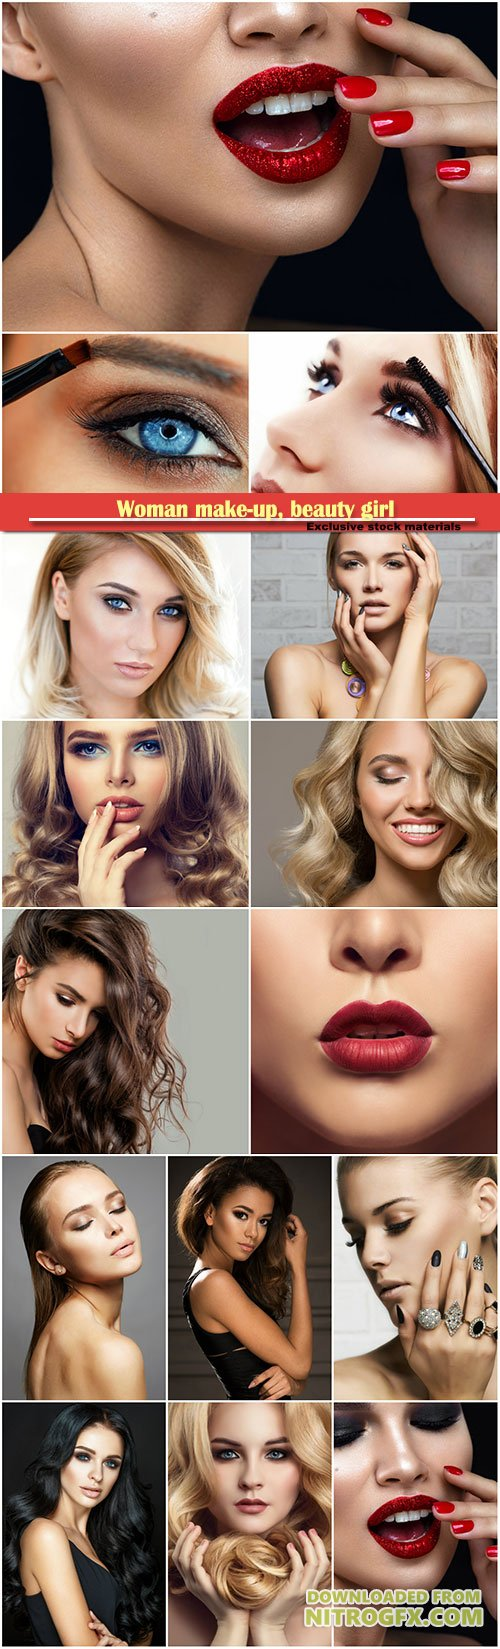 Woman make-up, beauty girl with perfect skin